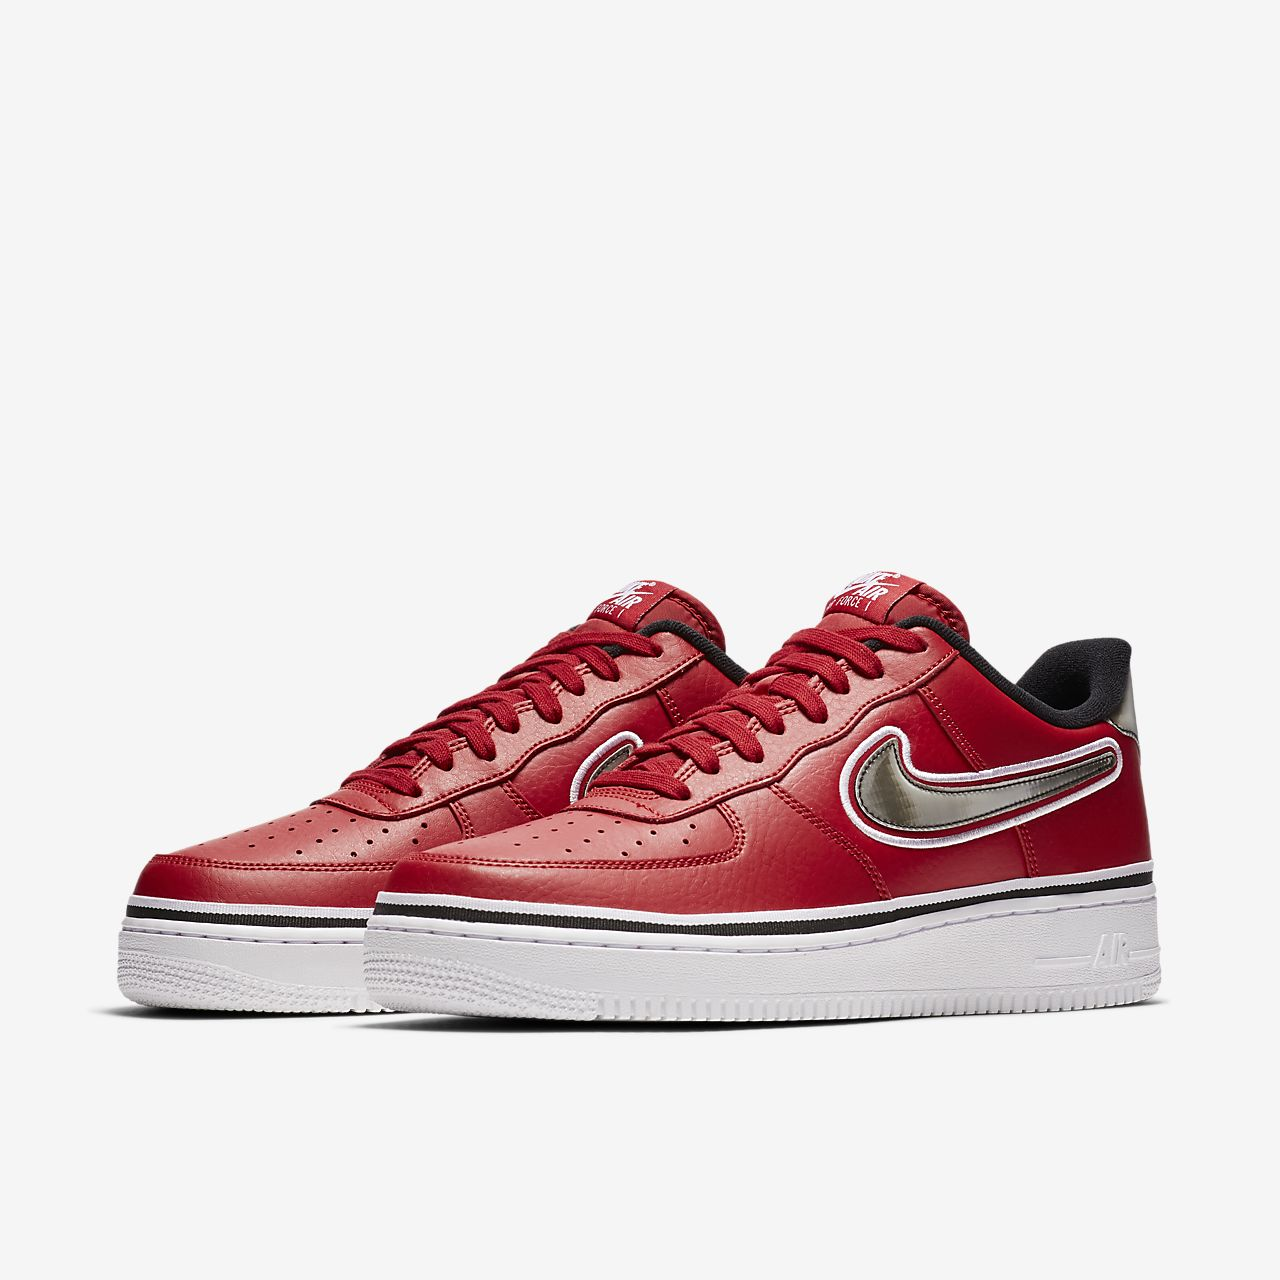 new arrival a61b3 774e2 ... Nike Air Force 1 NBA Low (Chicago Bulls) Men s Shoe